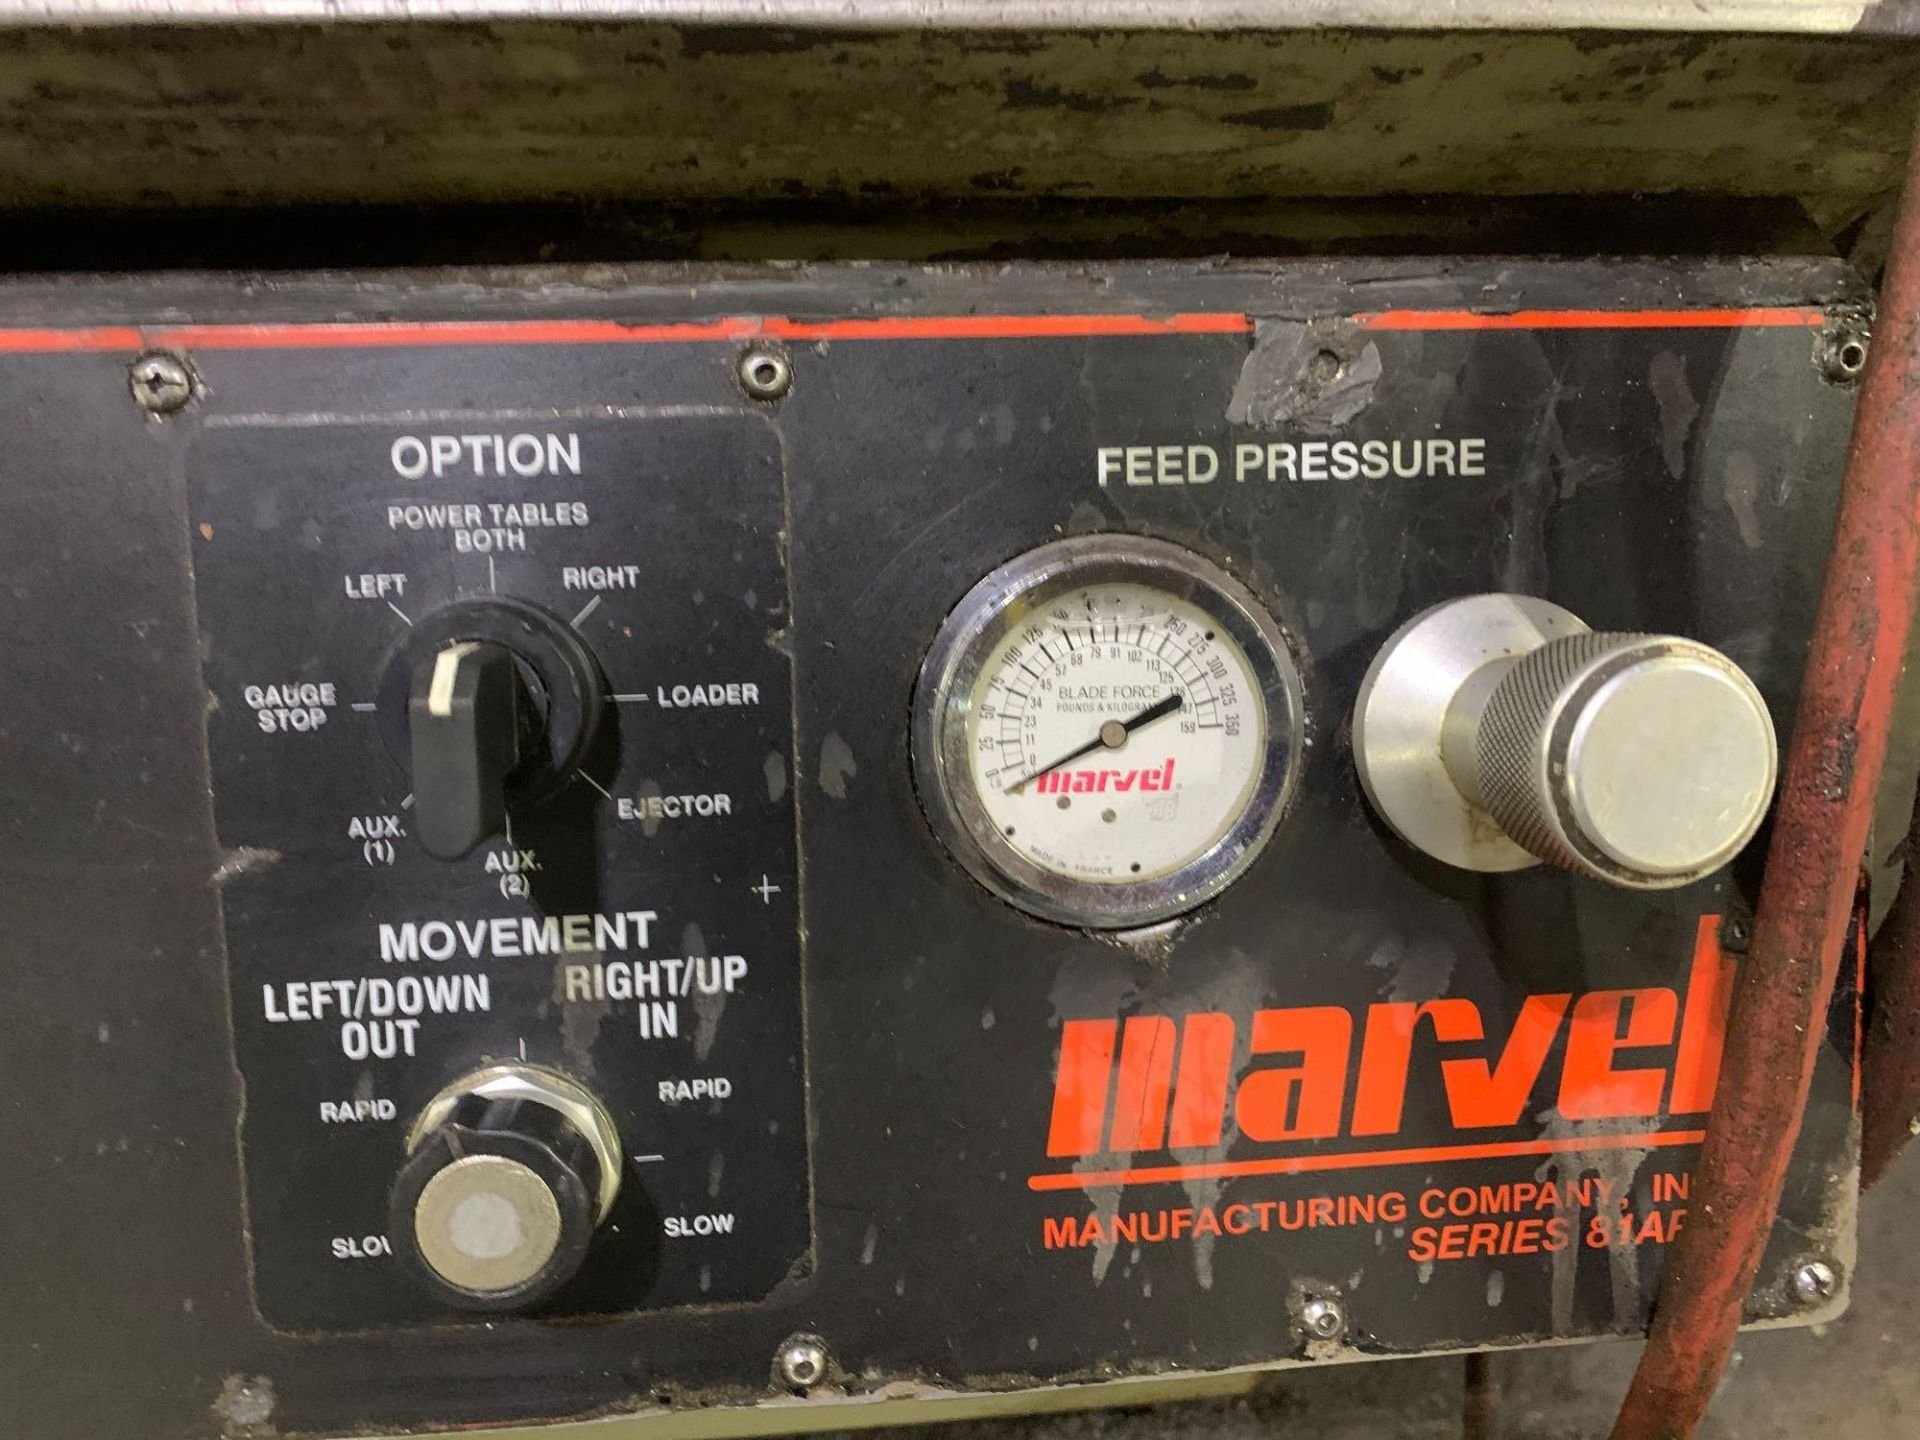 """Marvel Armstrong Blum Automatic Universal Band Saw Model 81A11PC Rated Capacity 18"""" x 20"""" Serial No. - Image 25 of 30"""